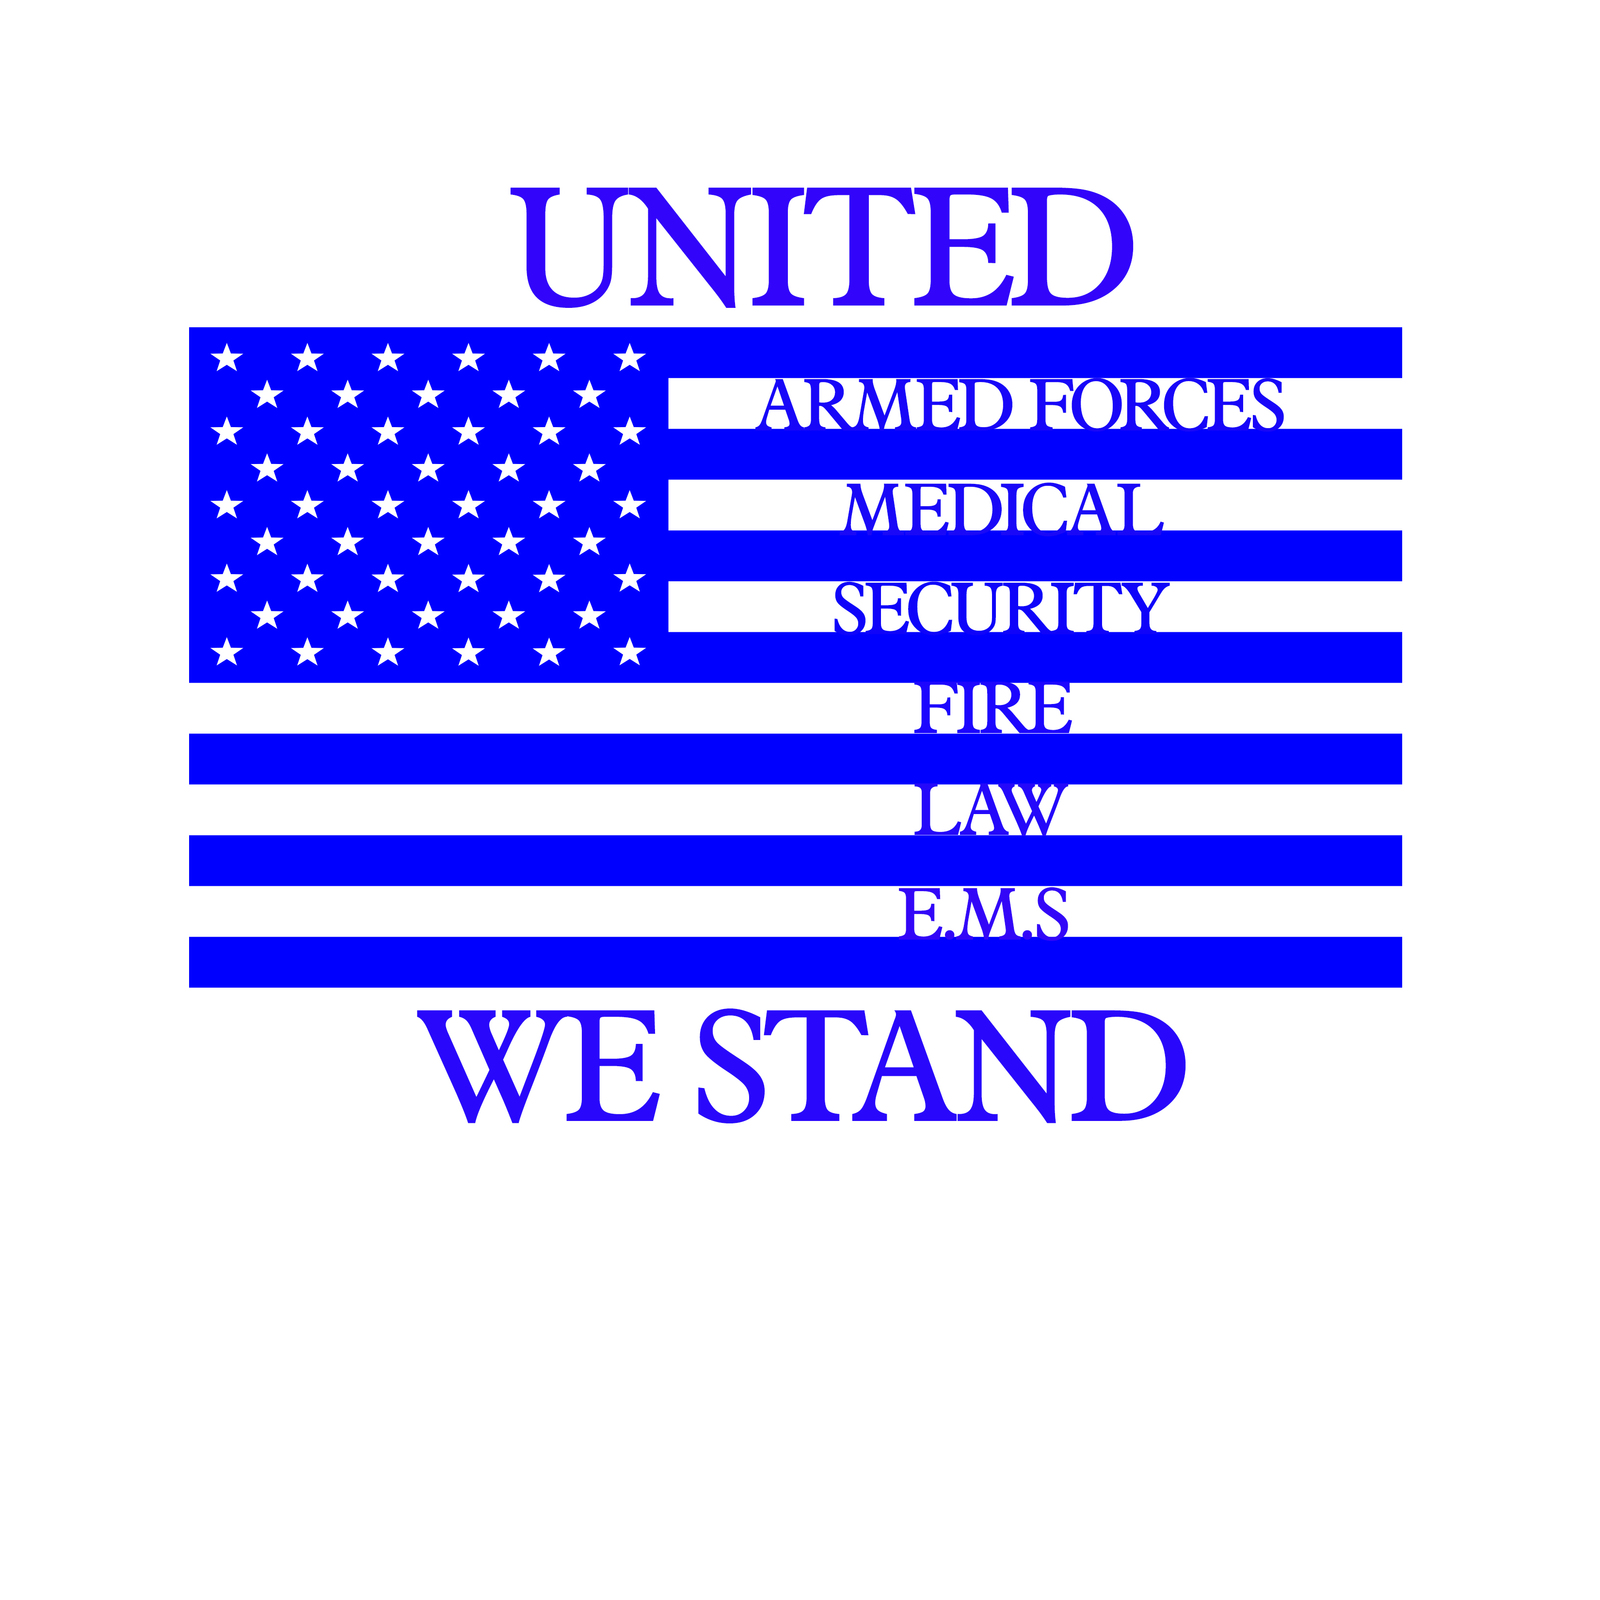 United we stand emergency response teams flag decal awareness sticker image 3